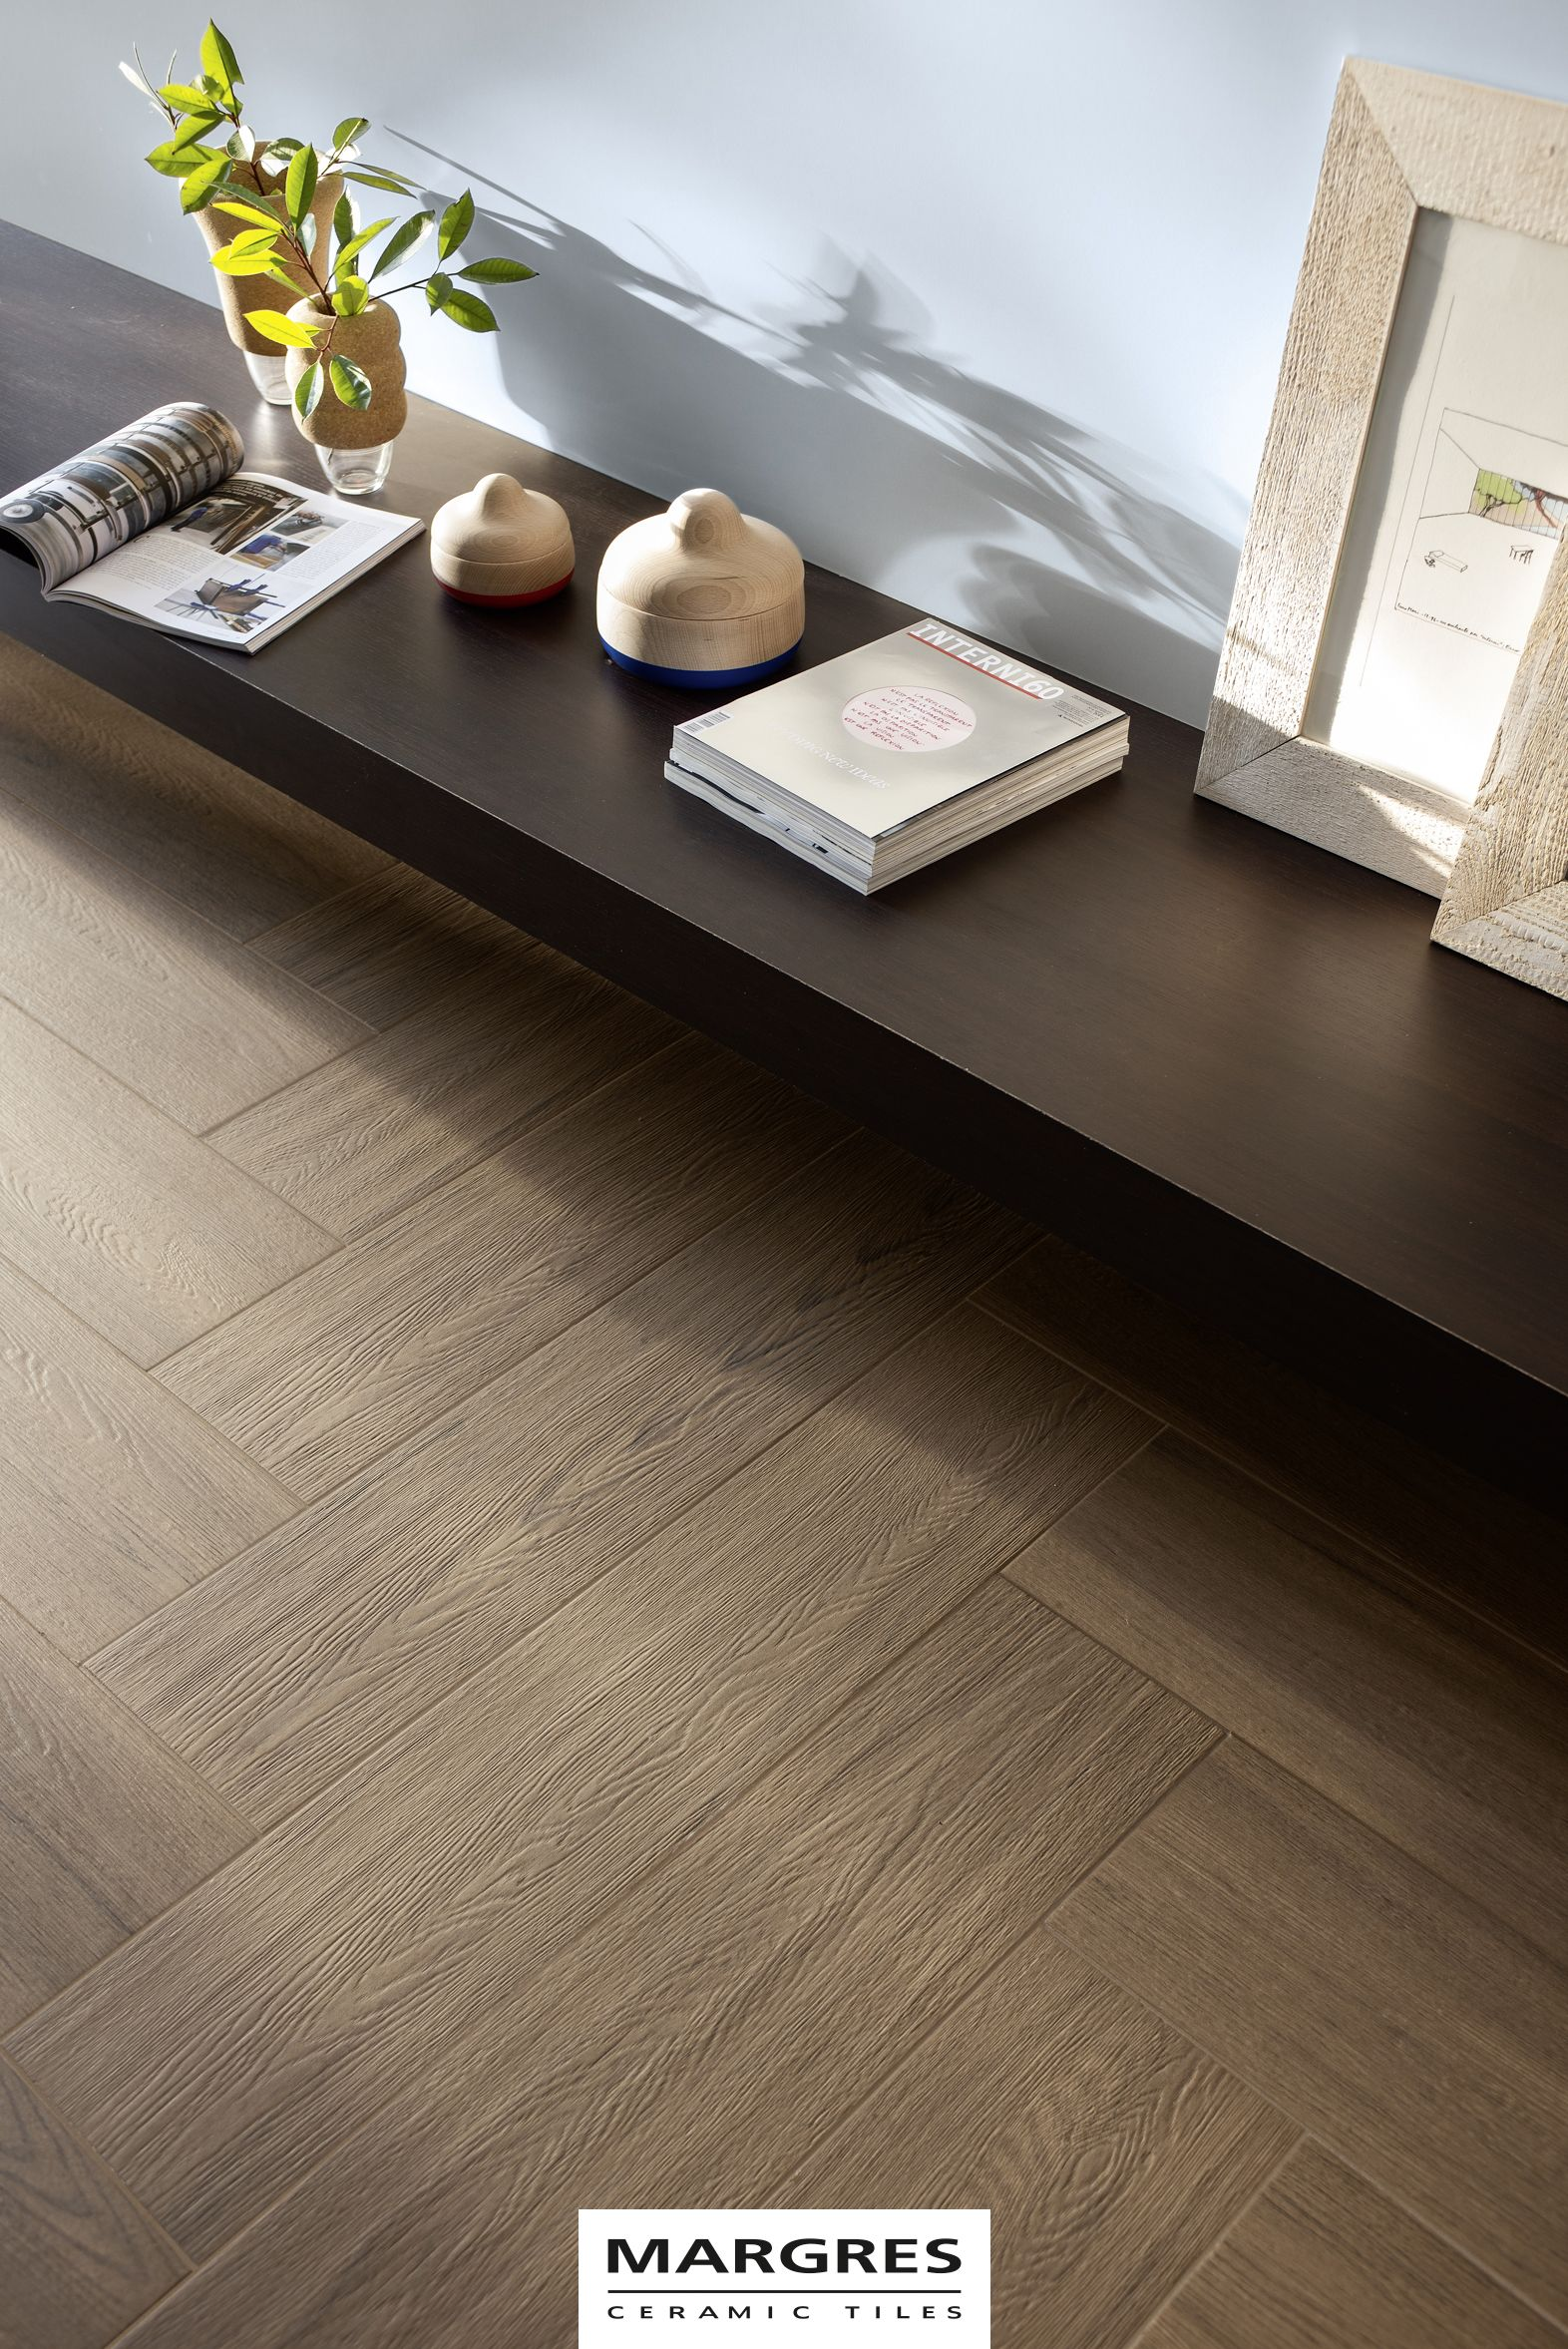 Porcelain Stoneware Wall Floor Tiles Linea Extreme By Margres  # Muebles Nikea Campello